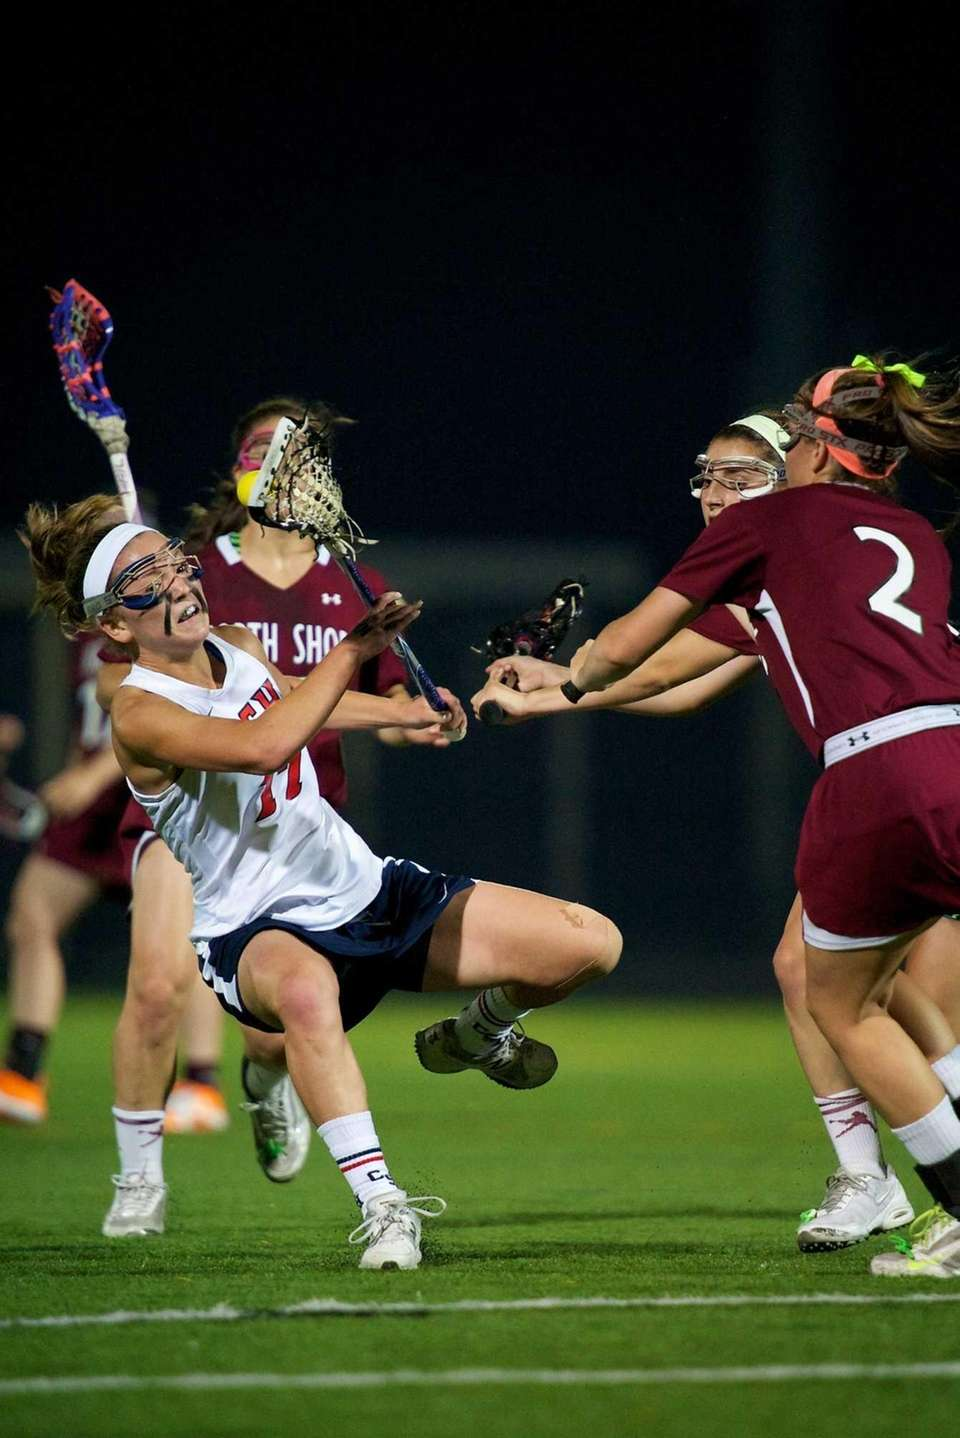 Cold Spring Harbor midfielder Jillian Lee is fouled